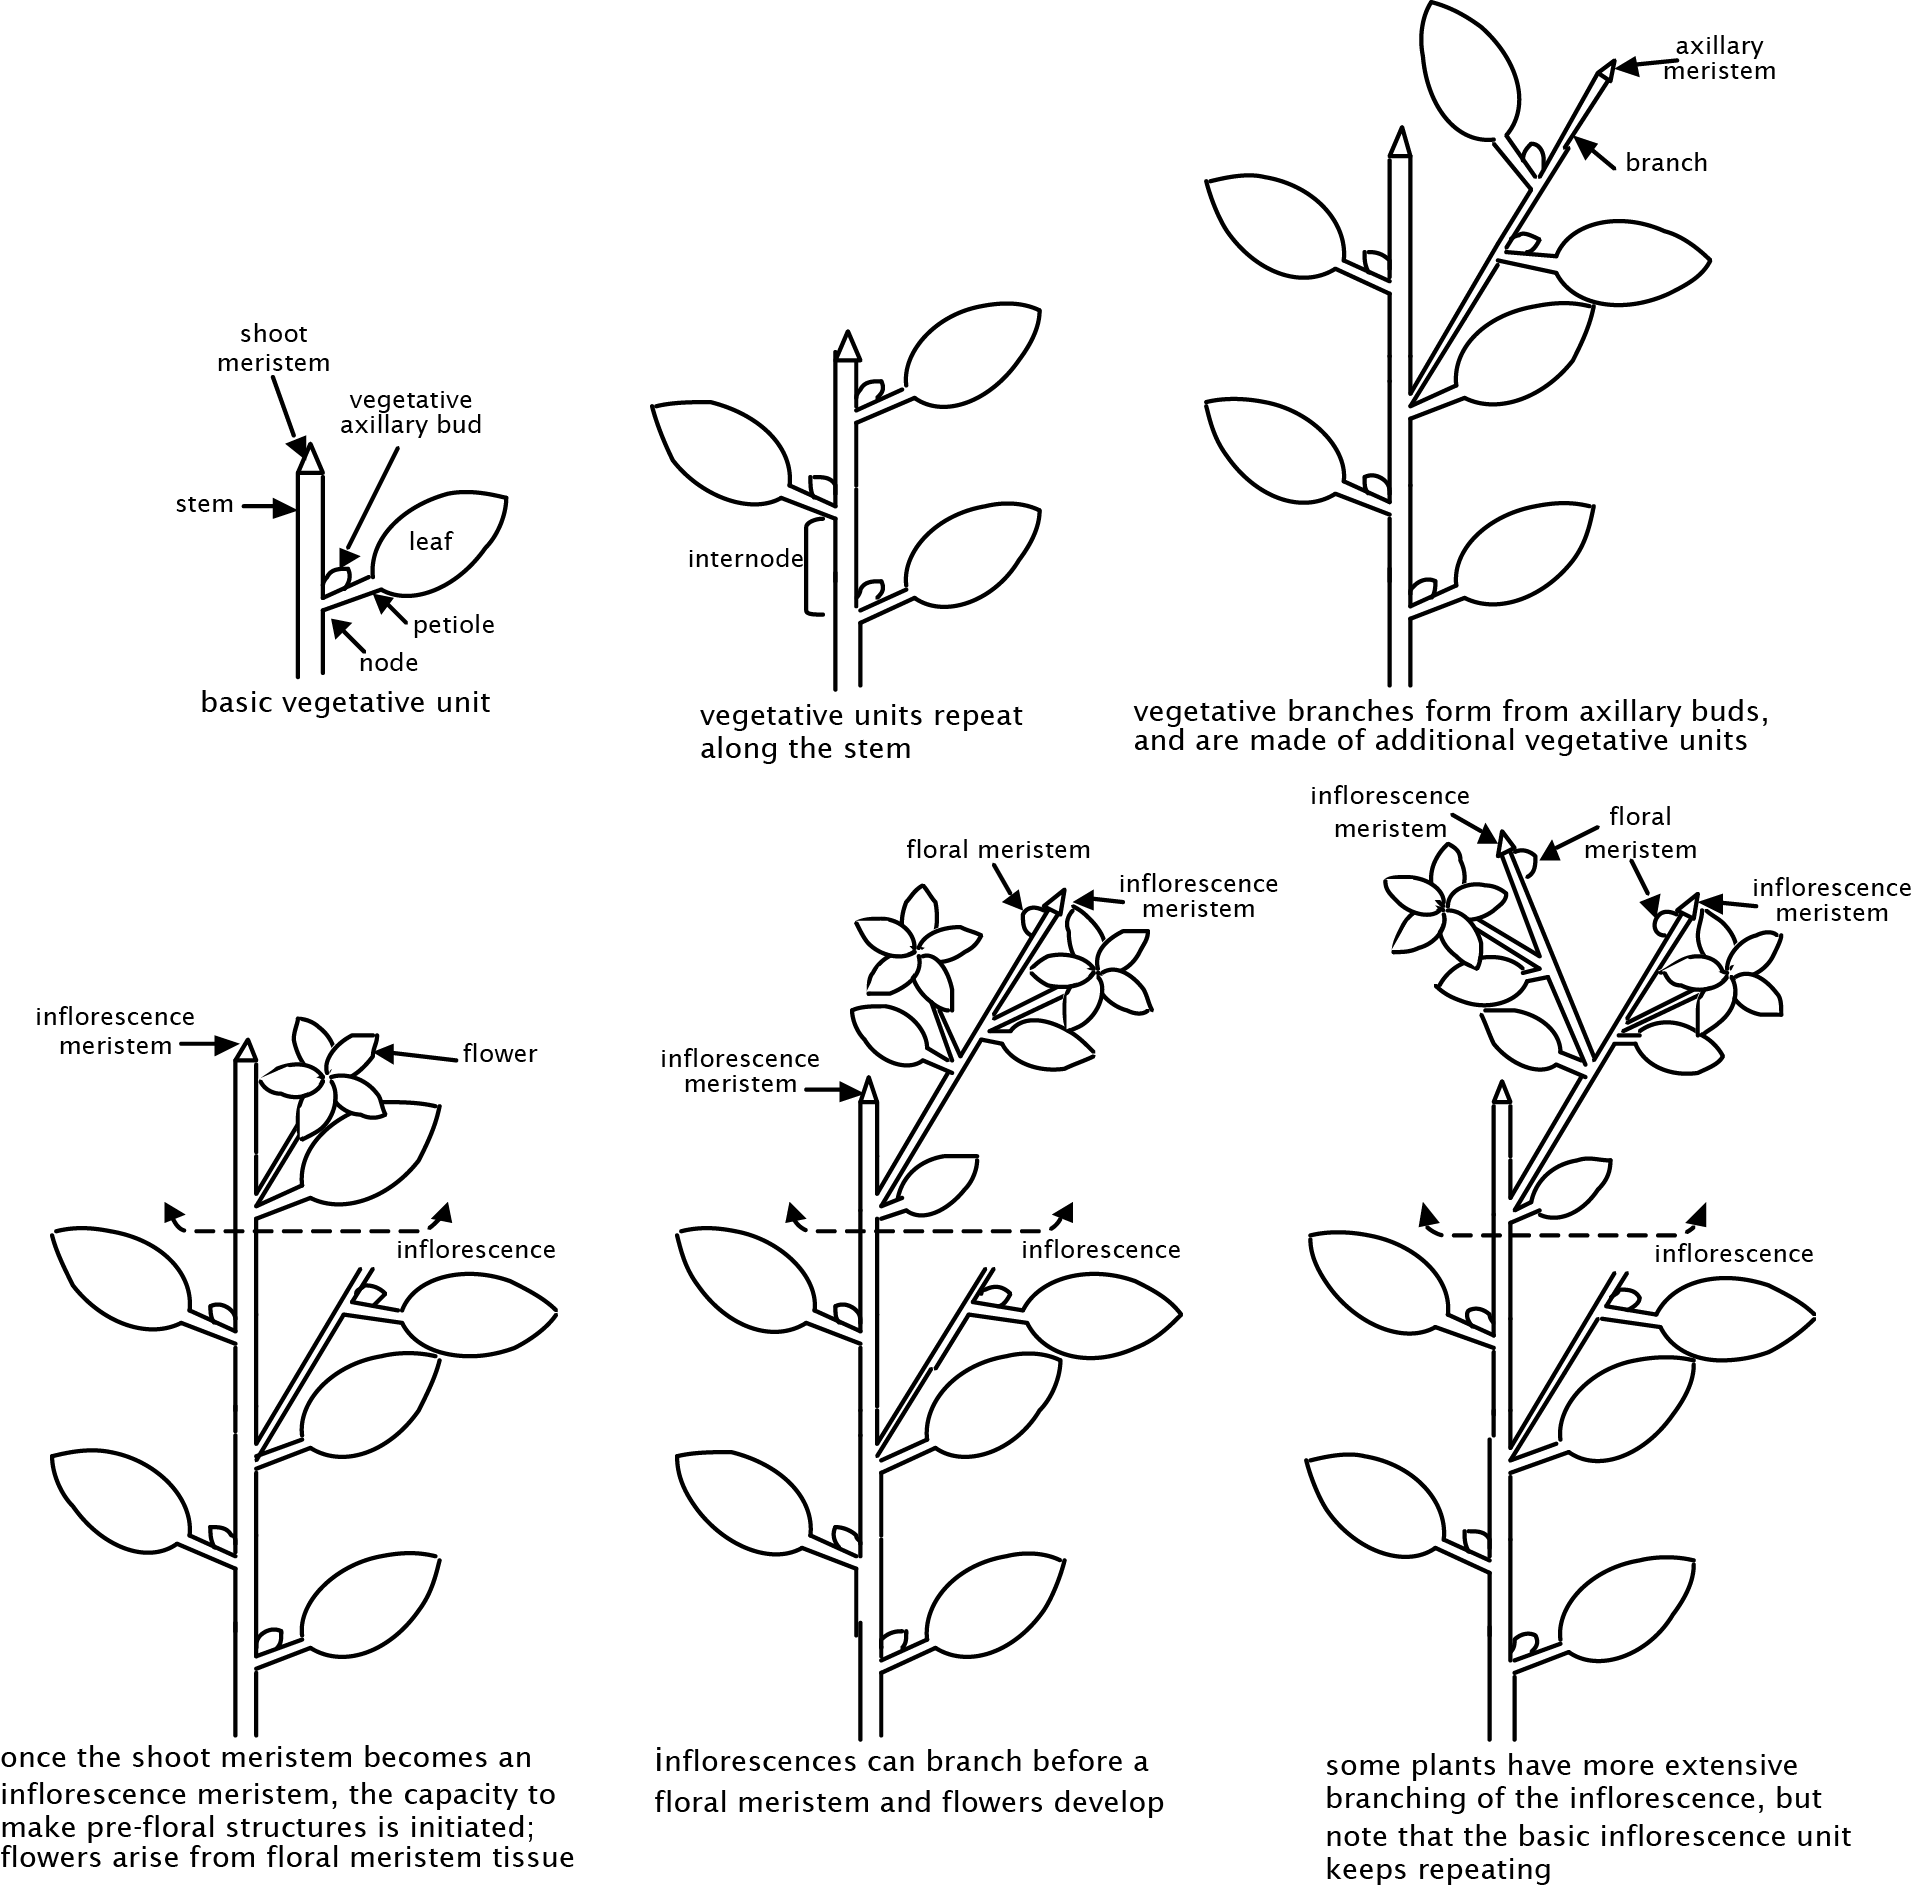 Brassica Plant Diagram Can You Draw Like This